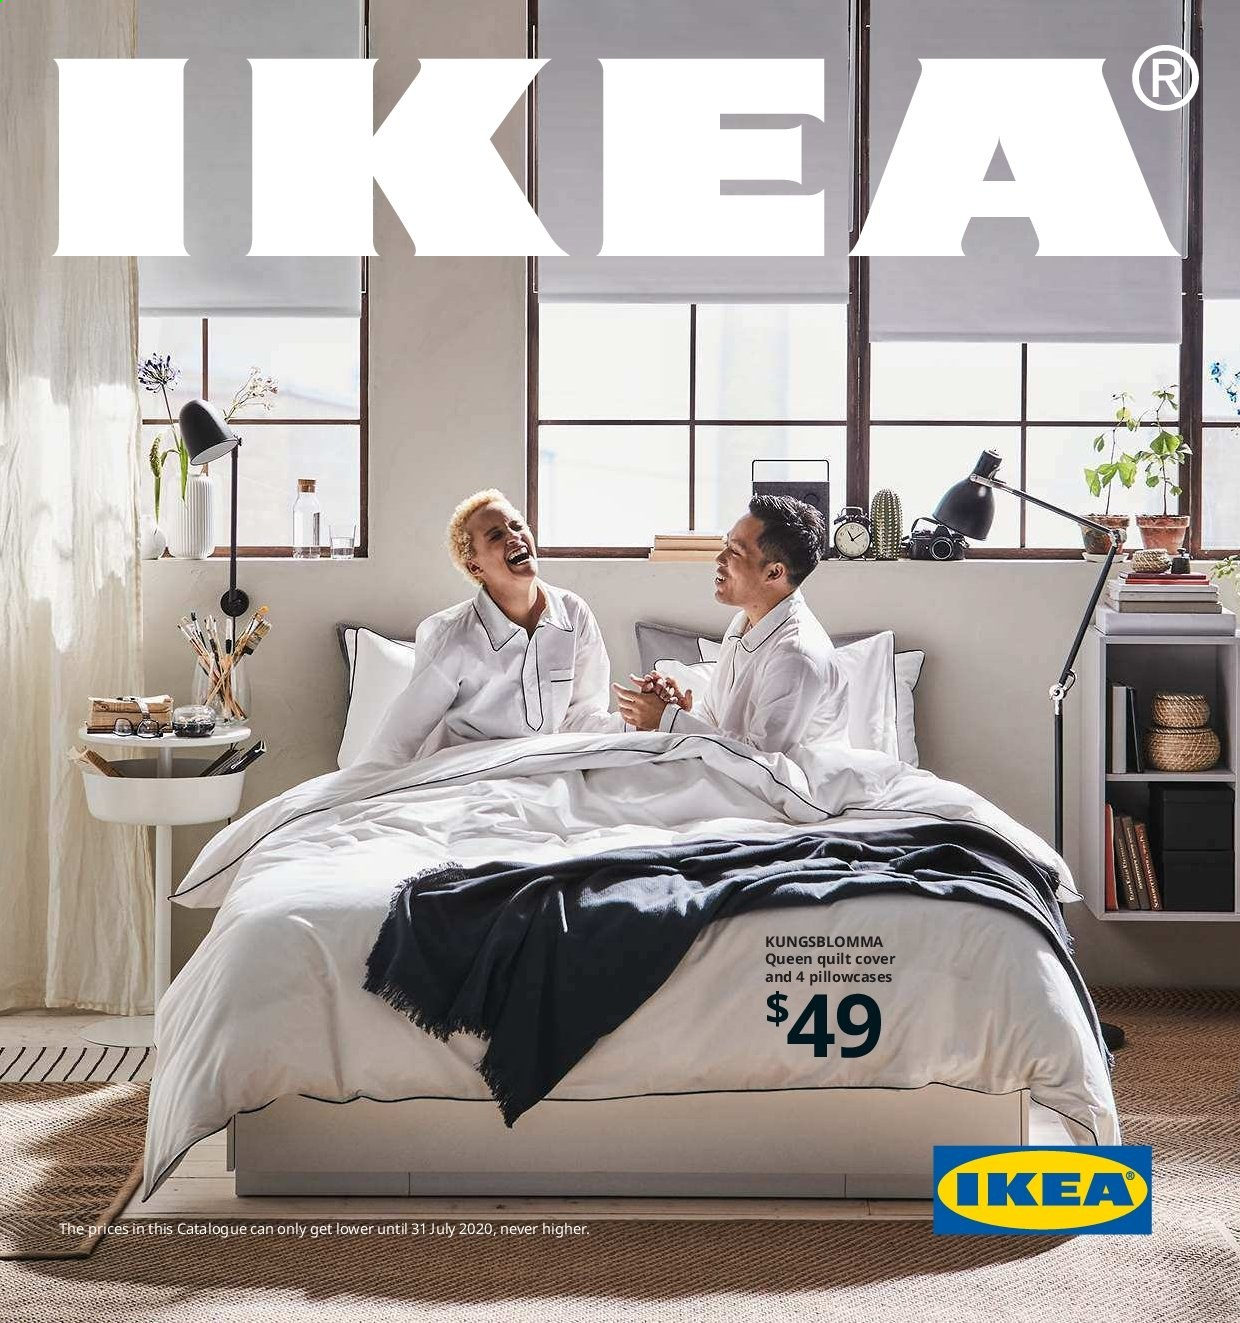 IKEA Catalogue - 29.8.2019 - 31.7.2020 - Sales products - pillowcases, quilt. Page 1.